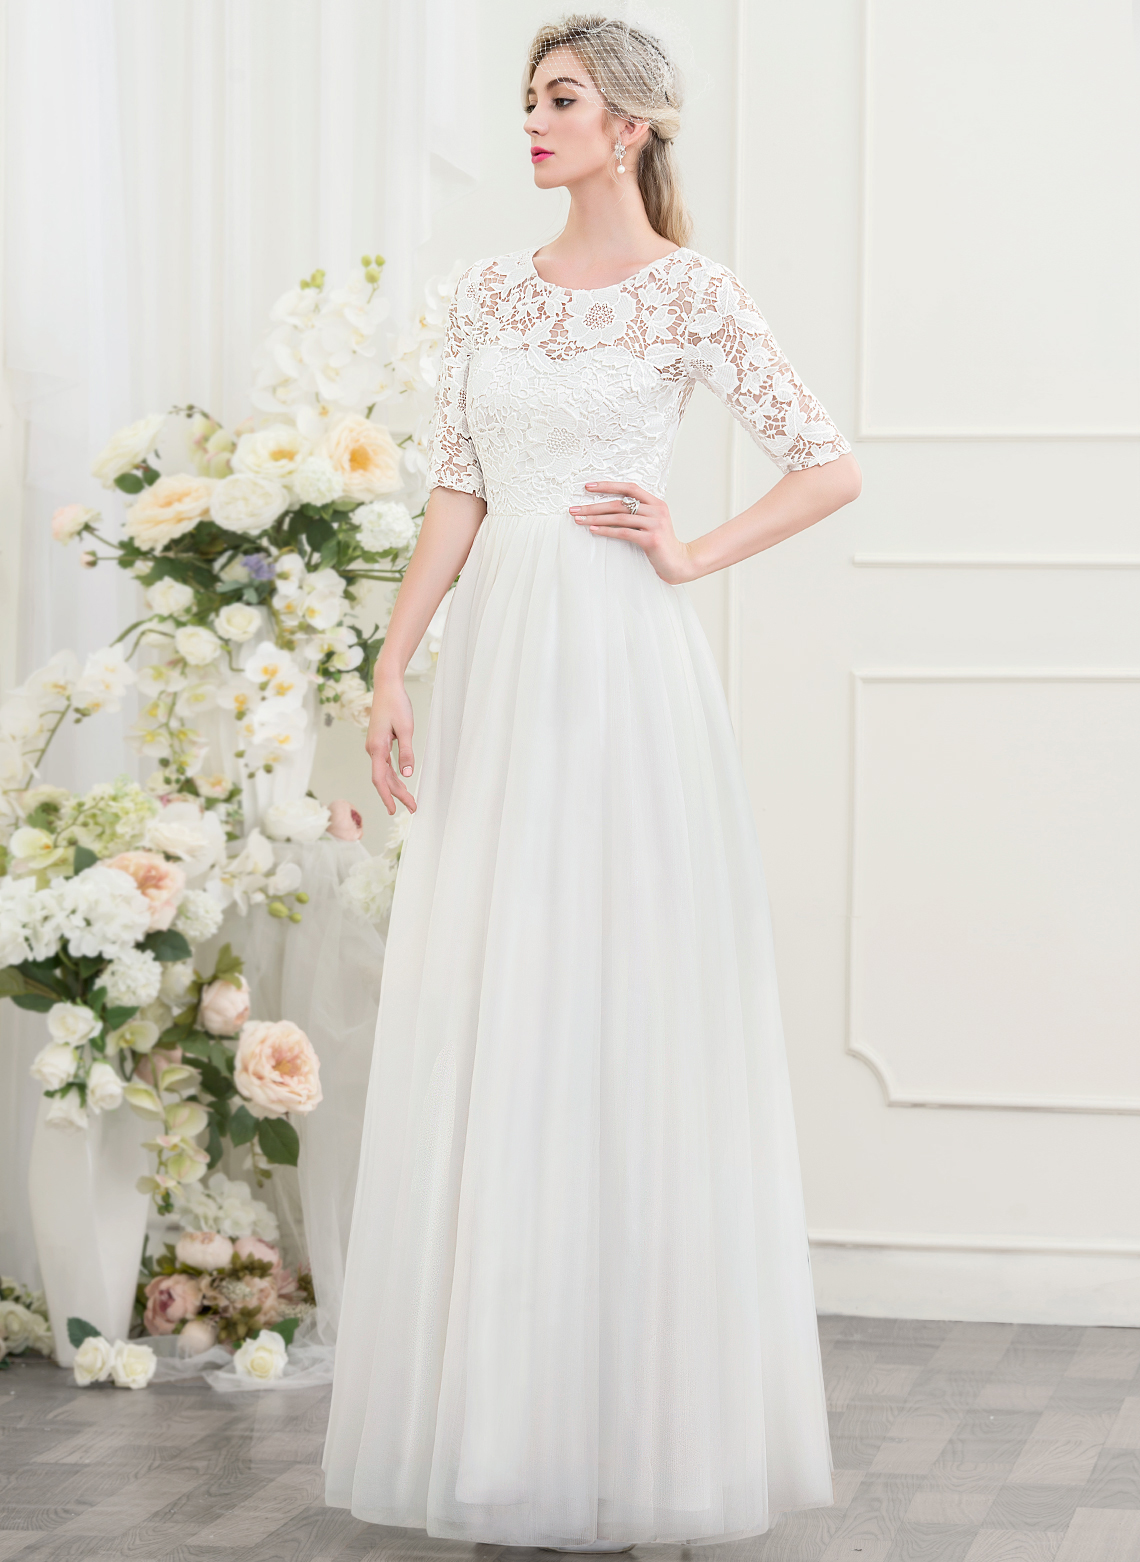 Wedding Dress Guide: Know What Style Fits You Best | JJsHouse